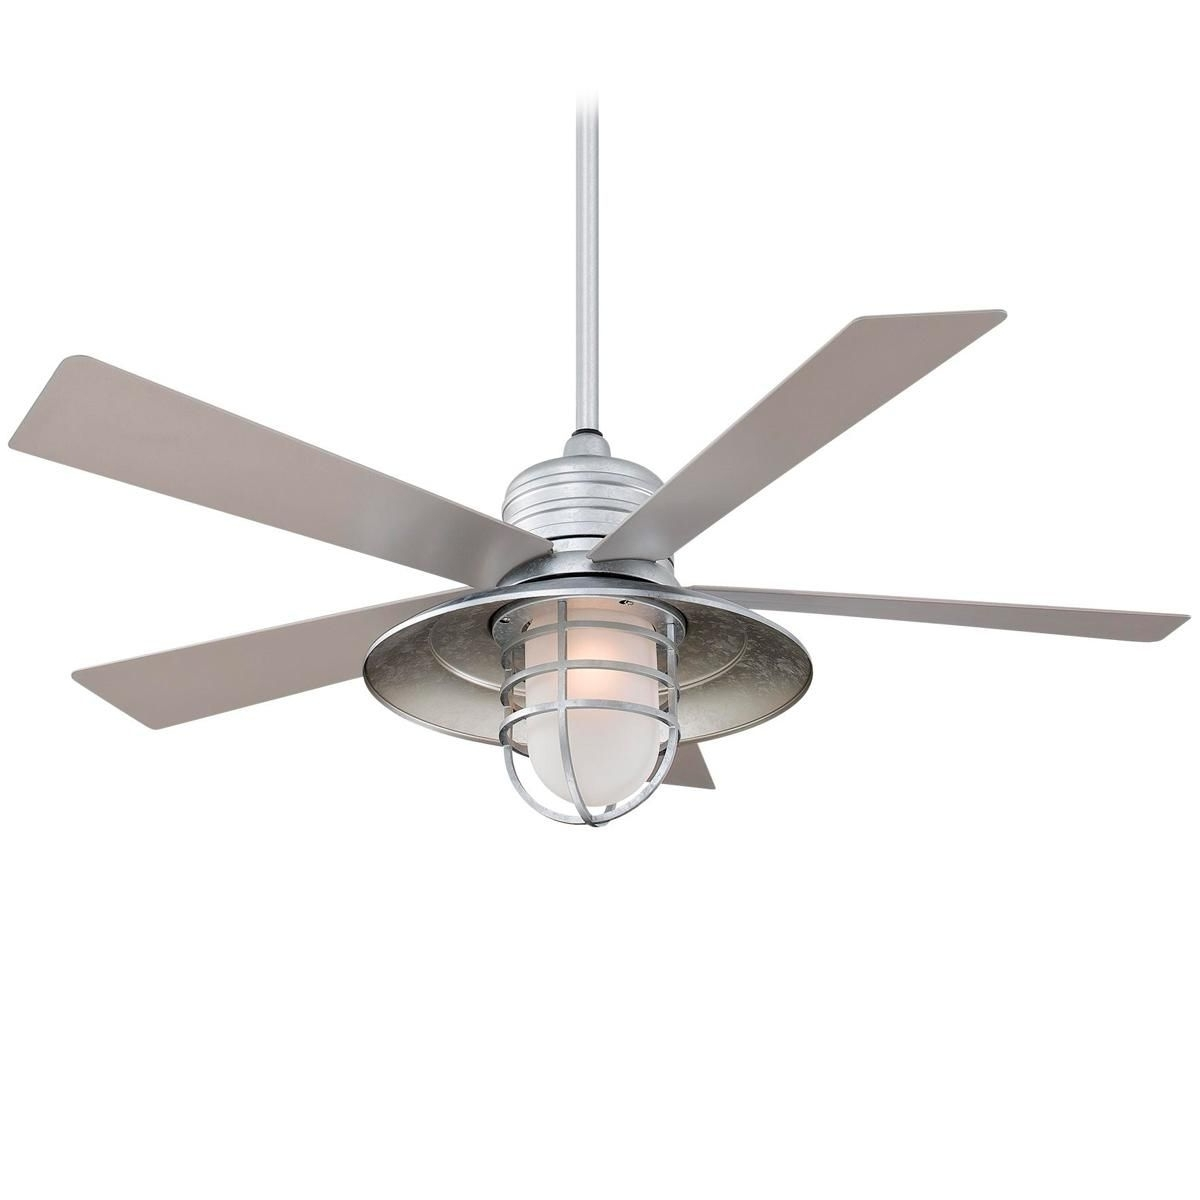 "Galvanized Outdoor Ceiling Fans With Light Throughout Widely Used 54"" Indoor/outdoor Boardwalk Ceiling Fan (Gallery 2 of 20)"